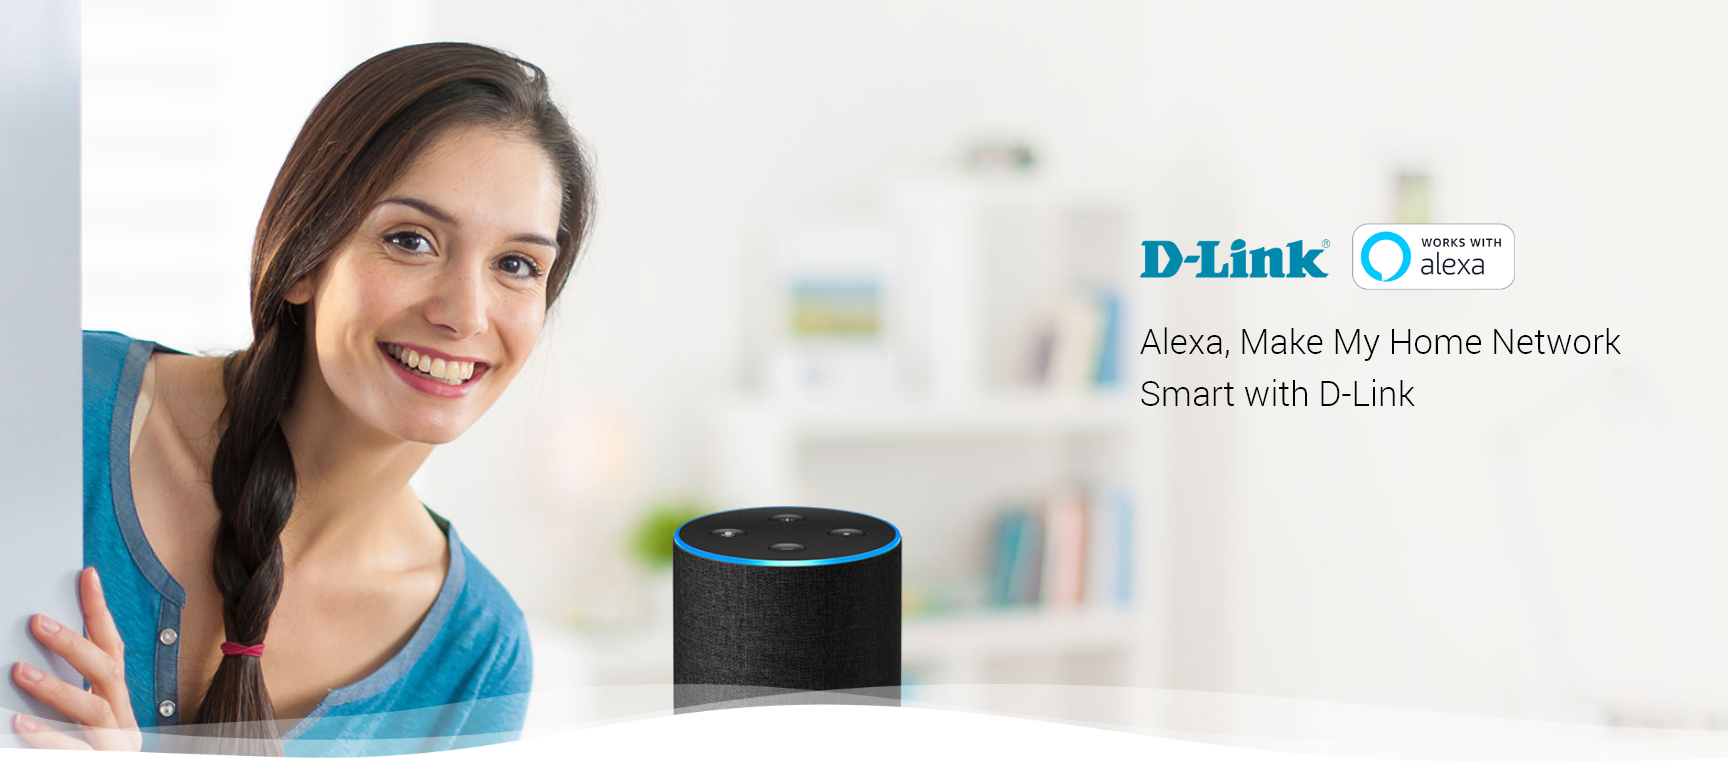 Alexa, Make My Home Network Smart with D-Link